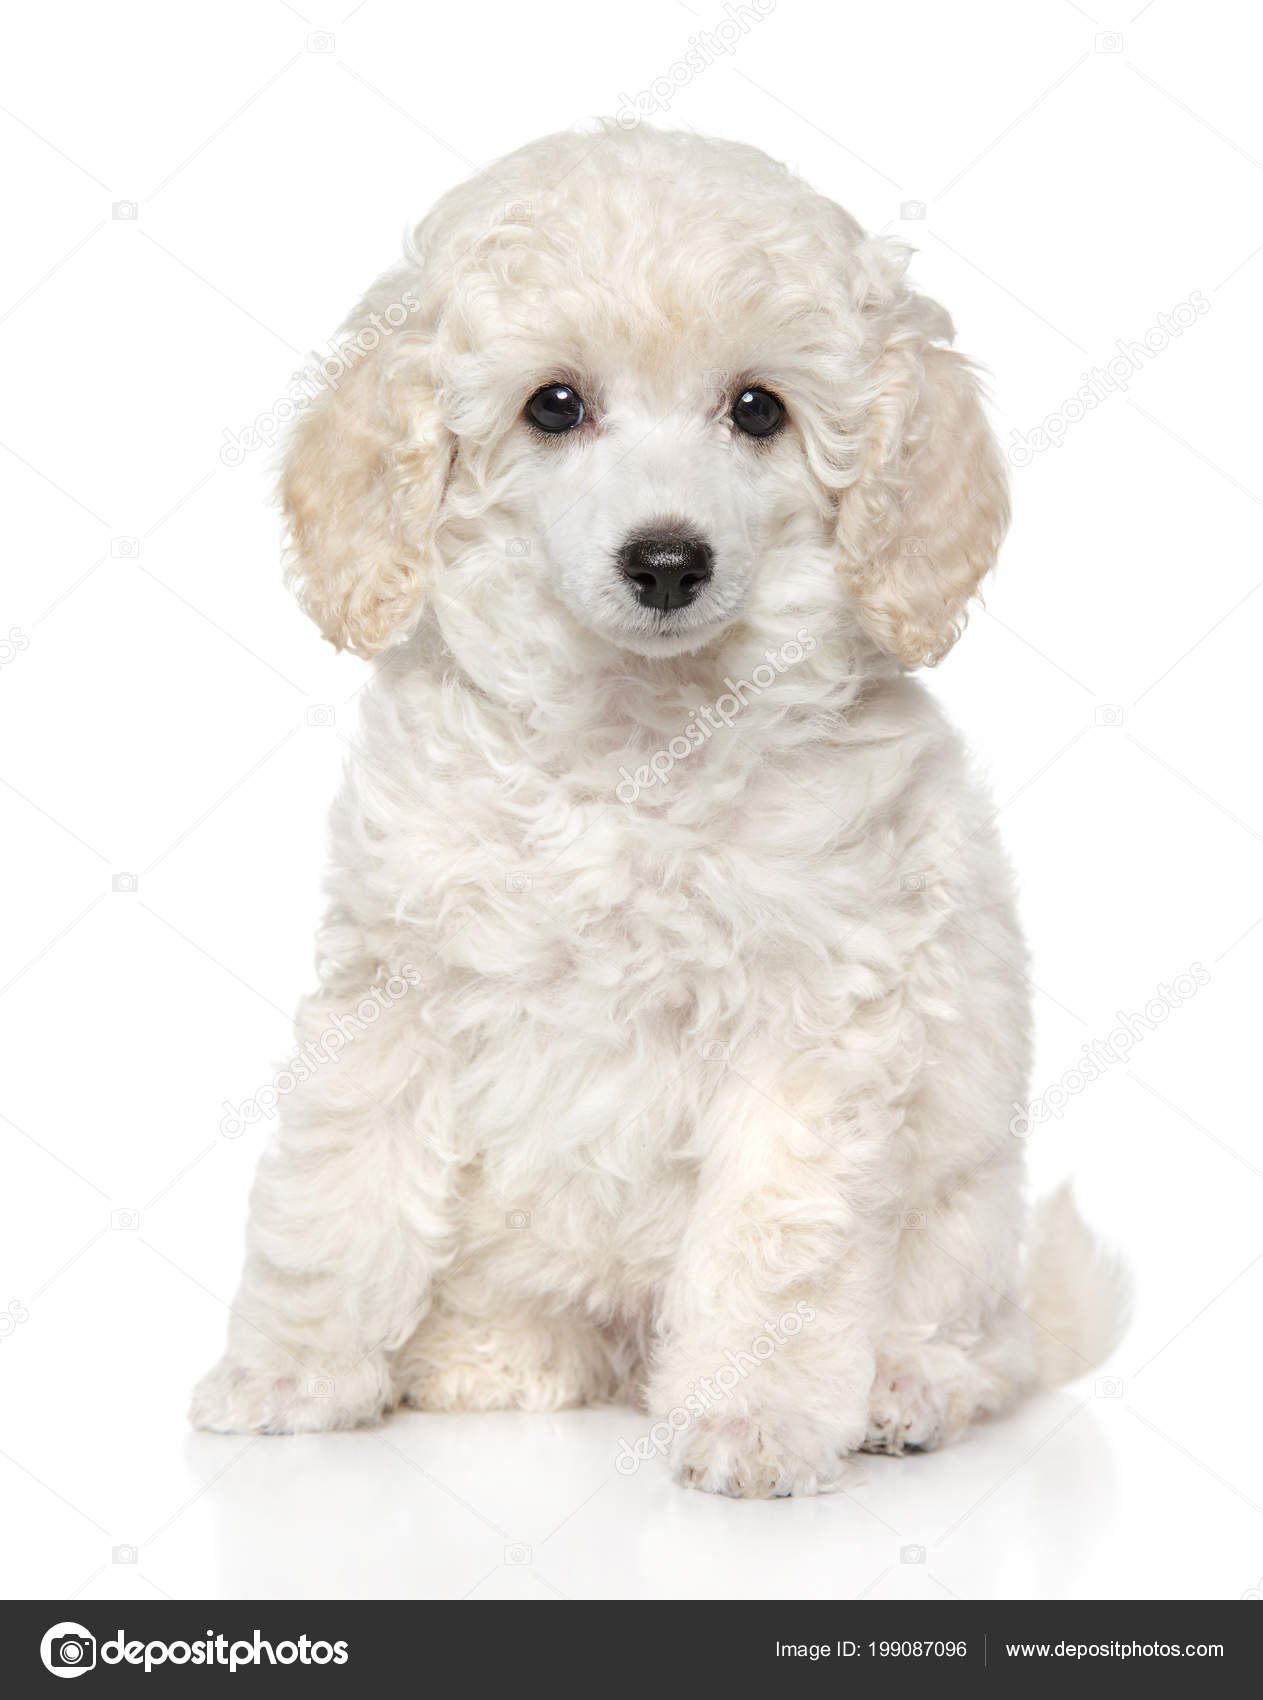 Pmages Baby Poodles Cute Toy Poodle Puppy Sits Front White Background Baby Animal Stock Photo C Fotojagodka 199087096